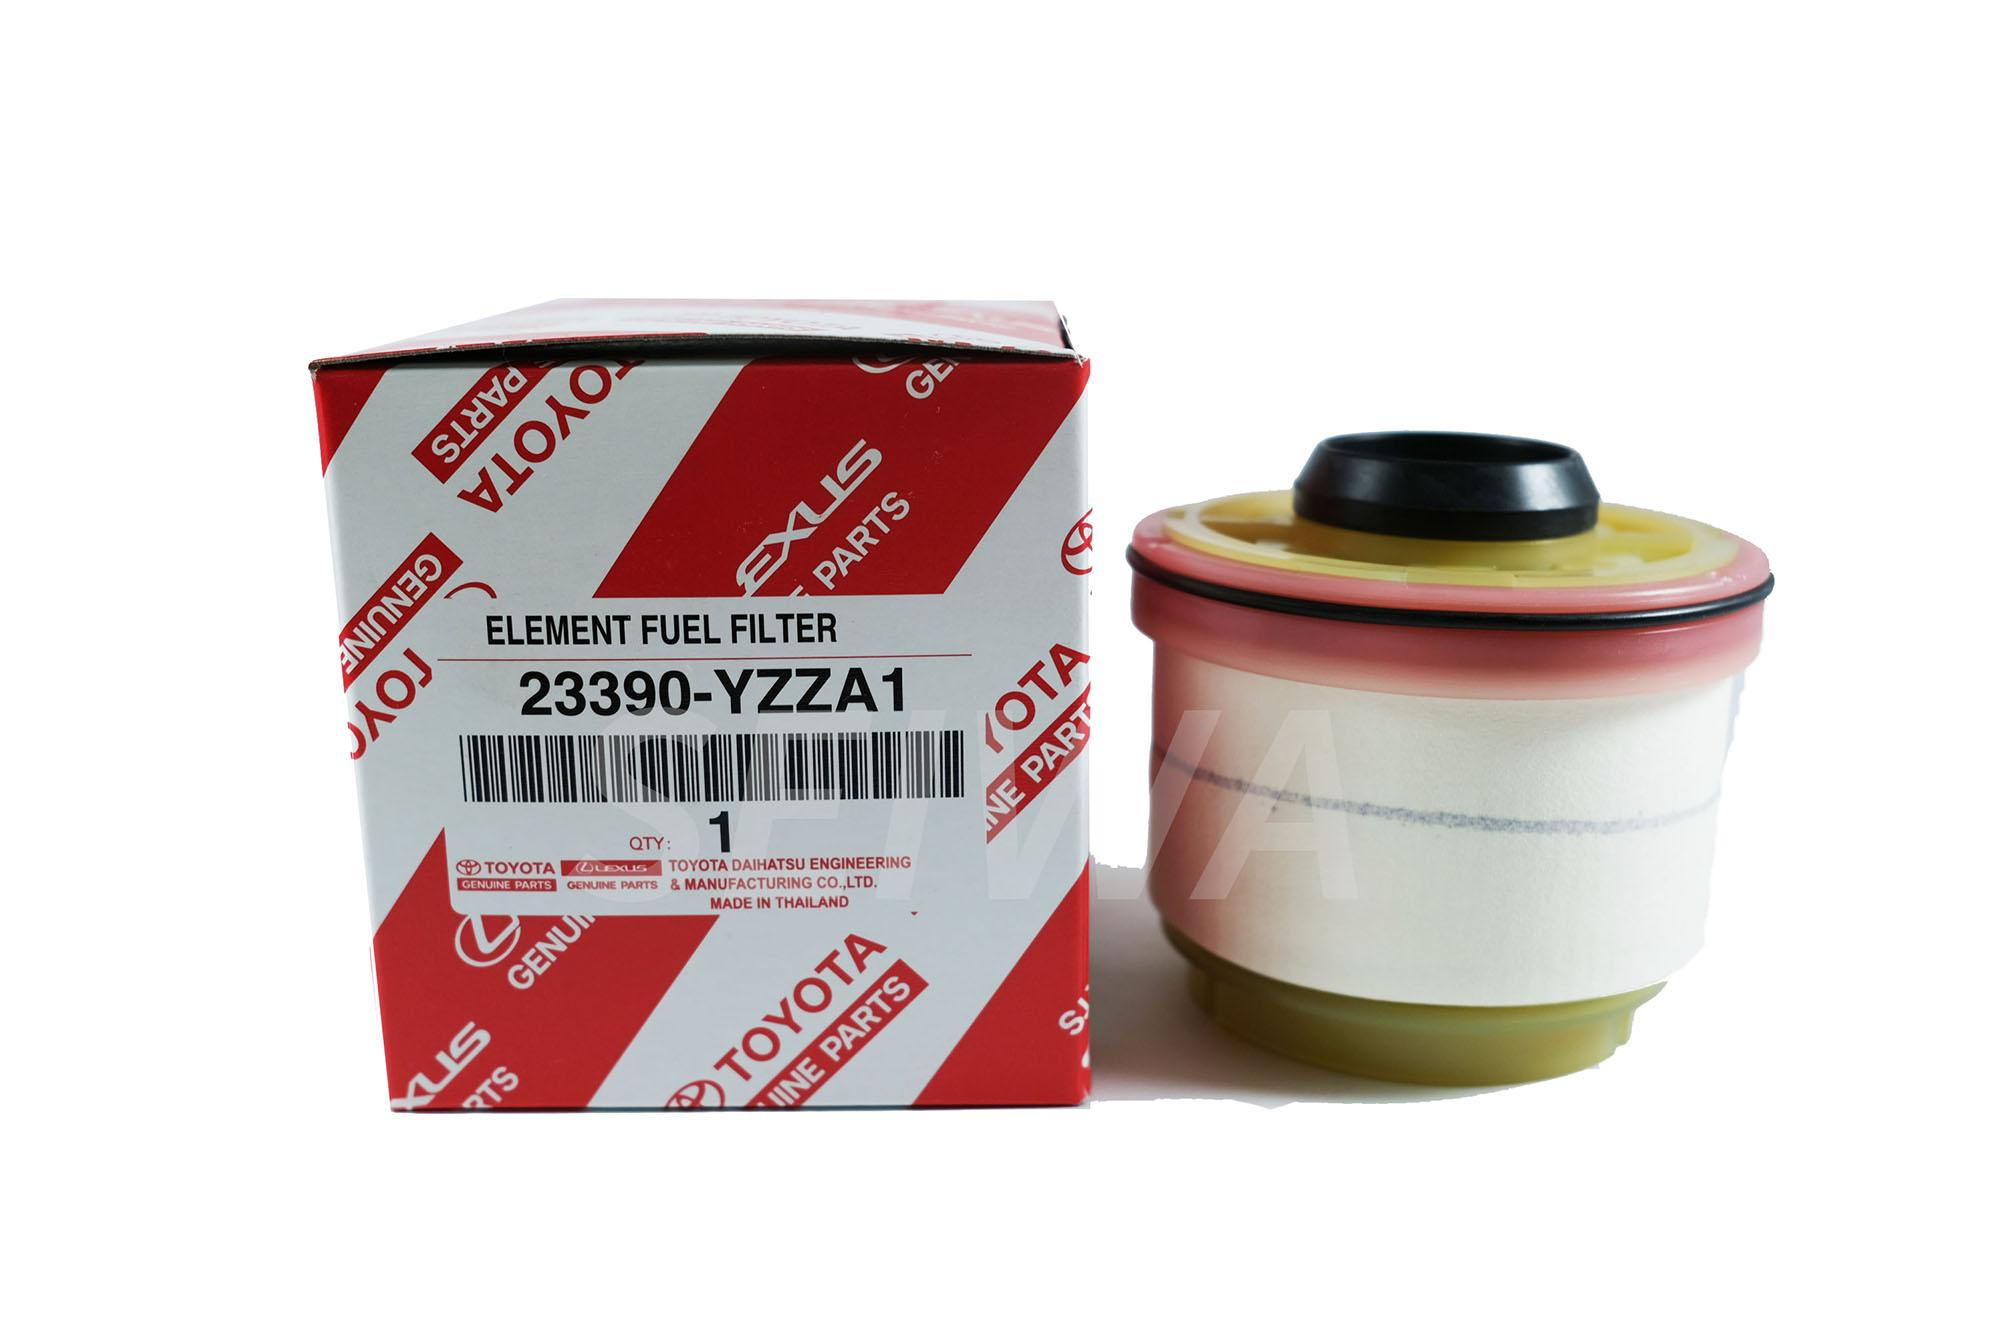 Fuel Filter For Sale Gas Online Brands Prices Reviews In 94 Chevy Truck Genuine Toyota Auto Parts 23390 Yzza1 Innova